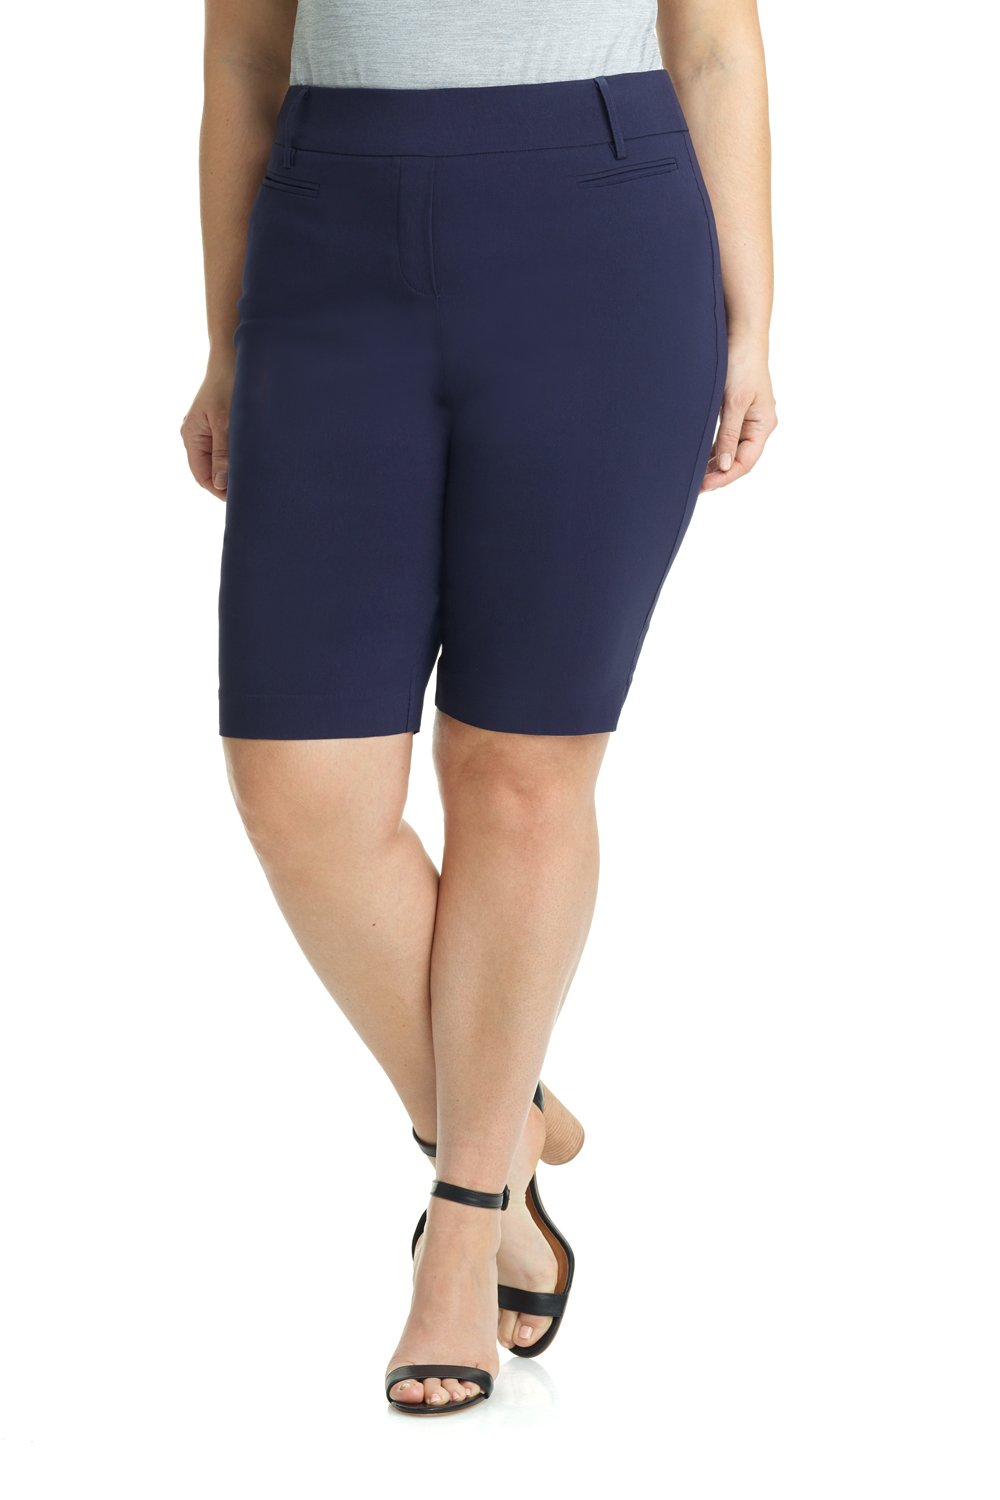 Rekucci Women's Ease In To Comfort Curvy Fit Plus Size Modern City Short (14W,Navy)